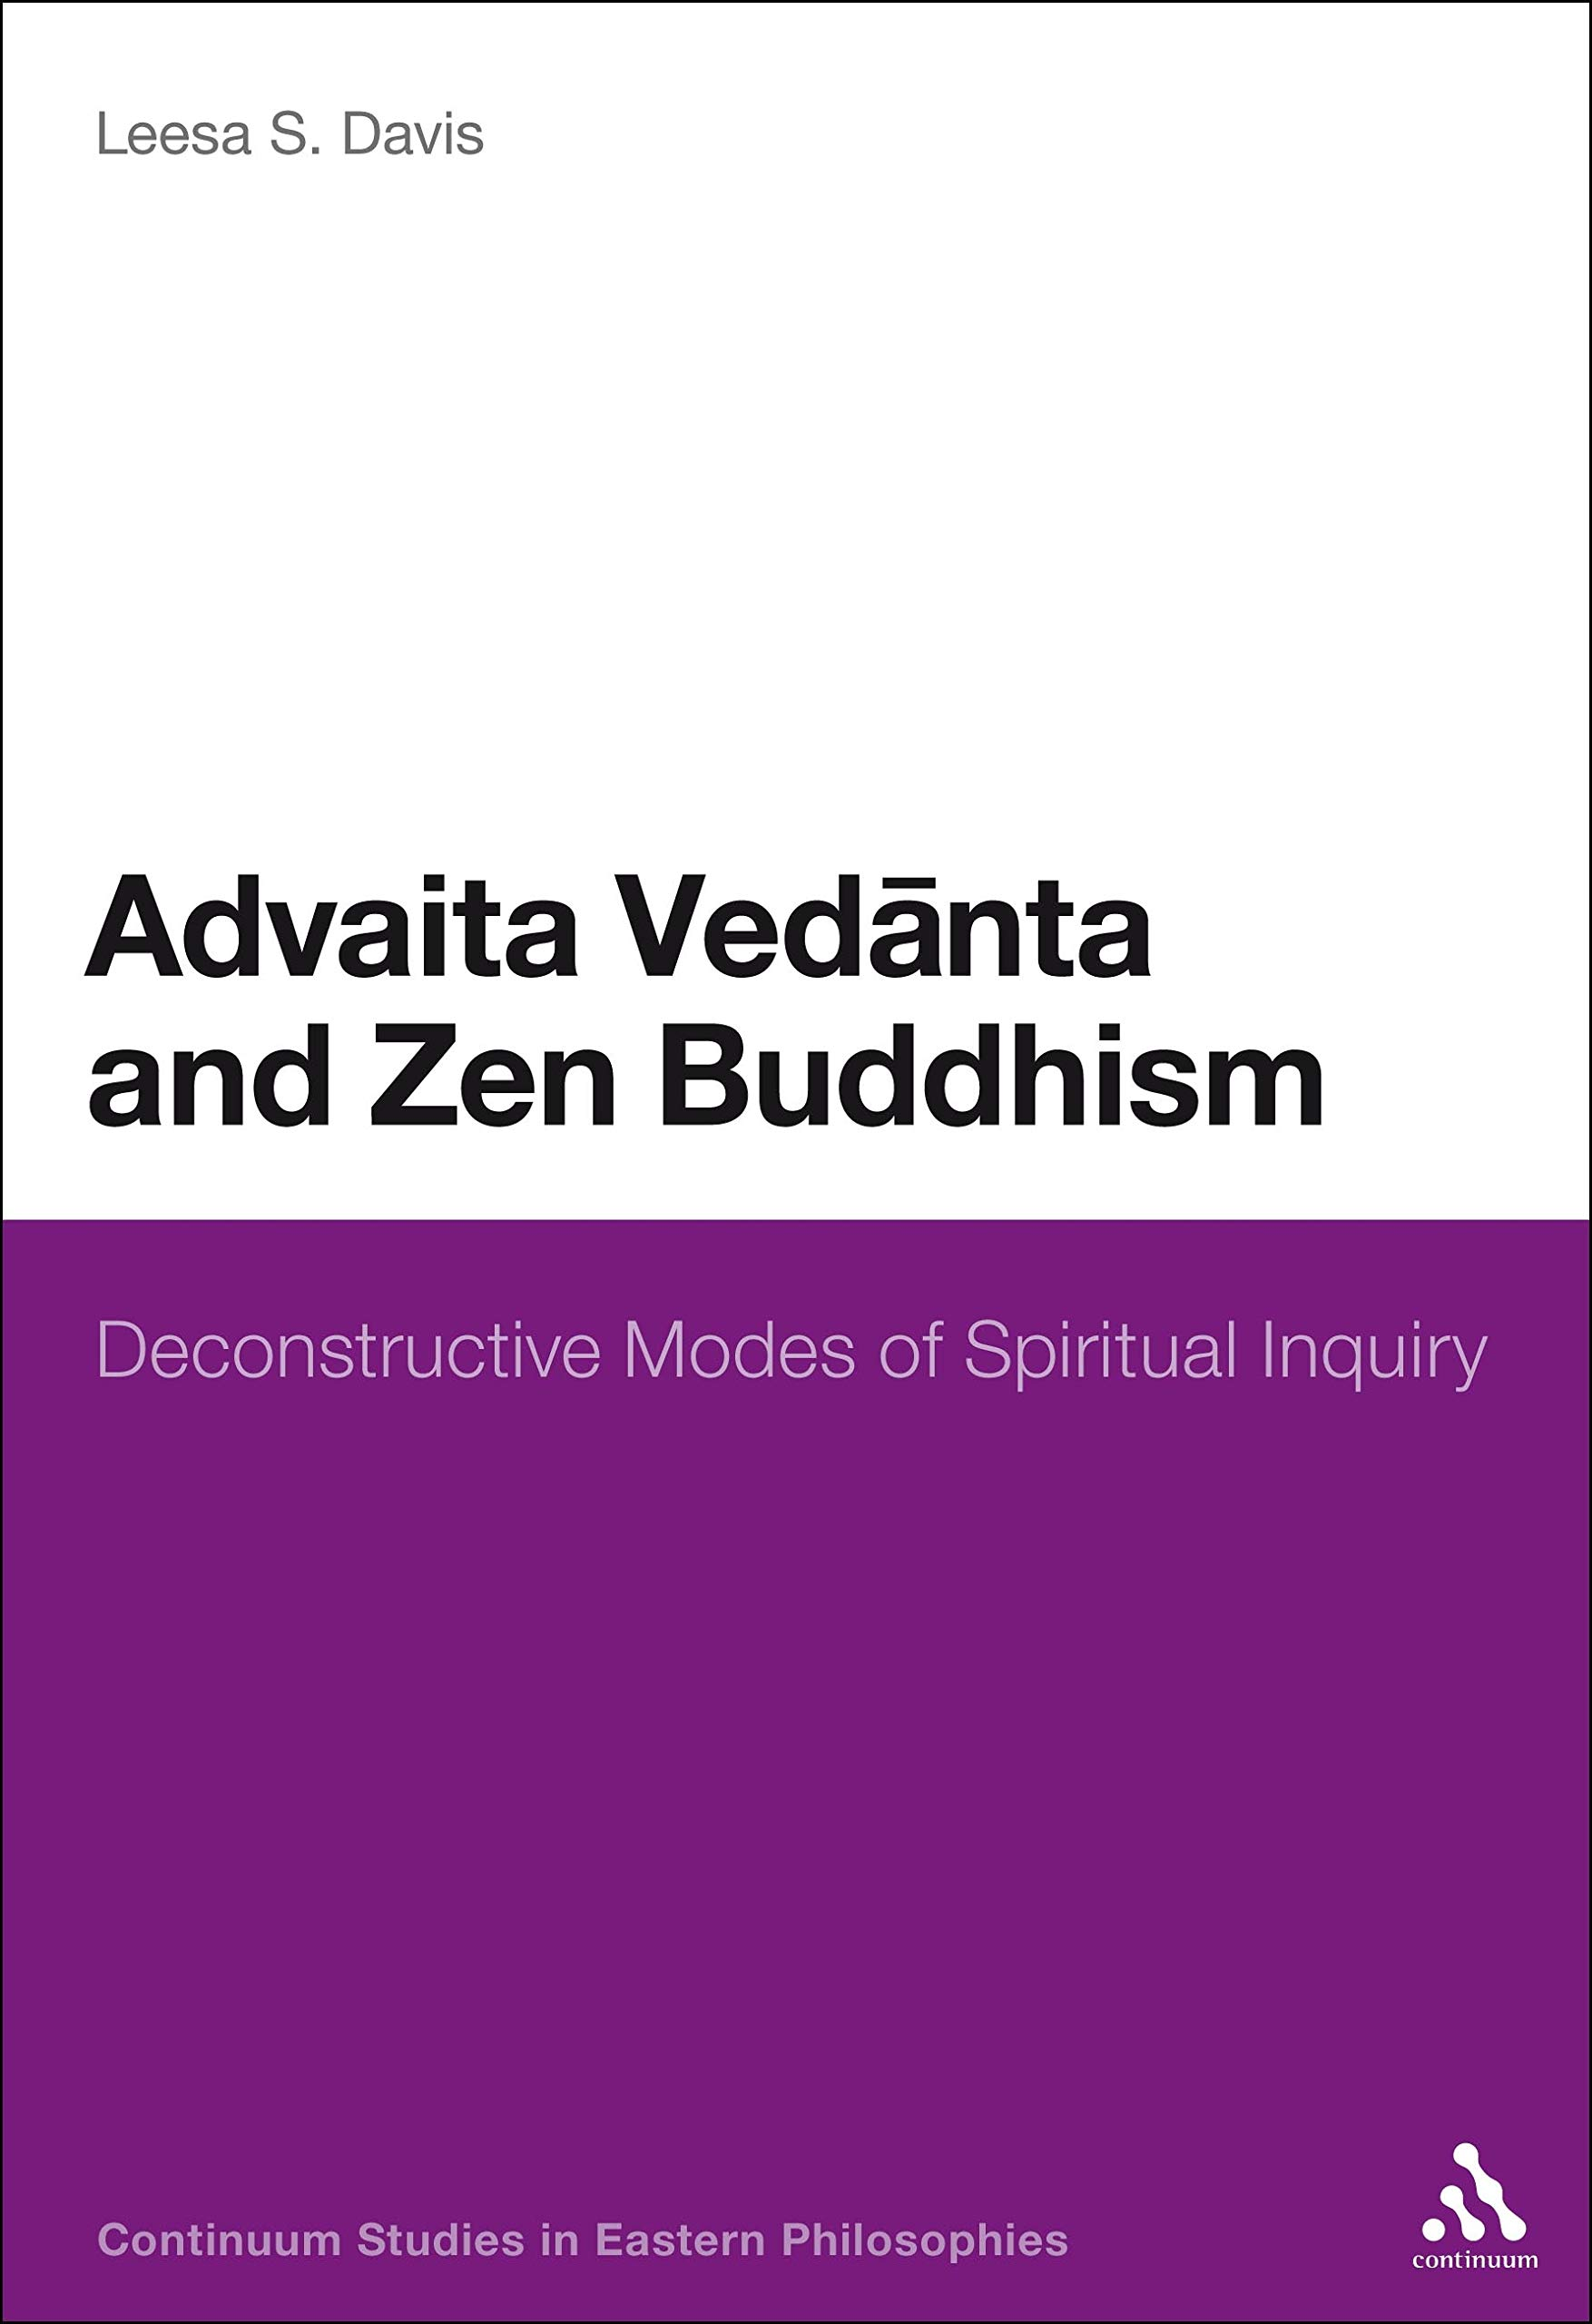 Davis Advaita Vedanta and Zen cover art